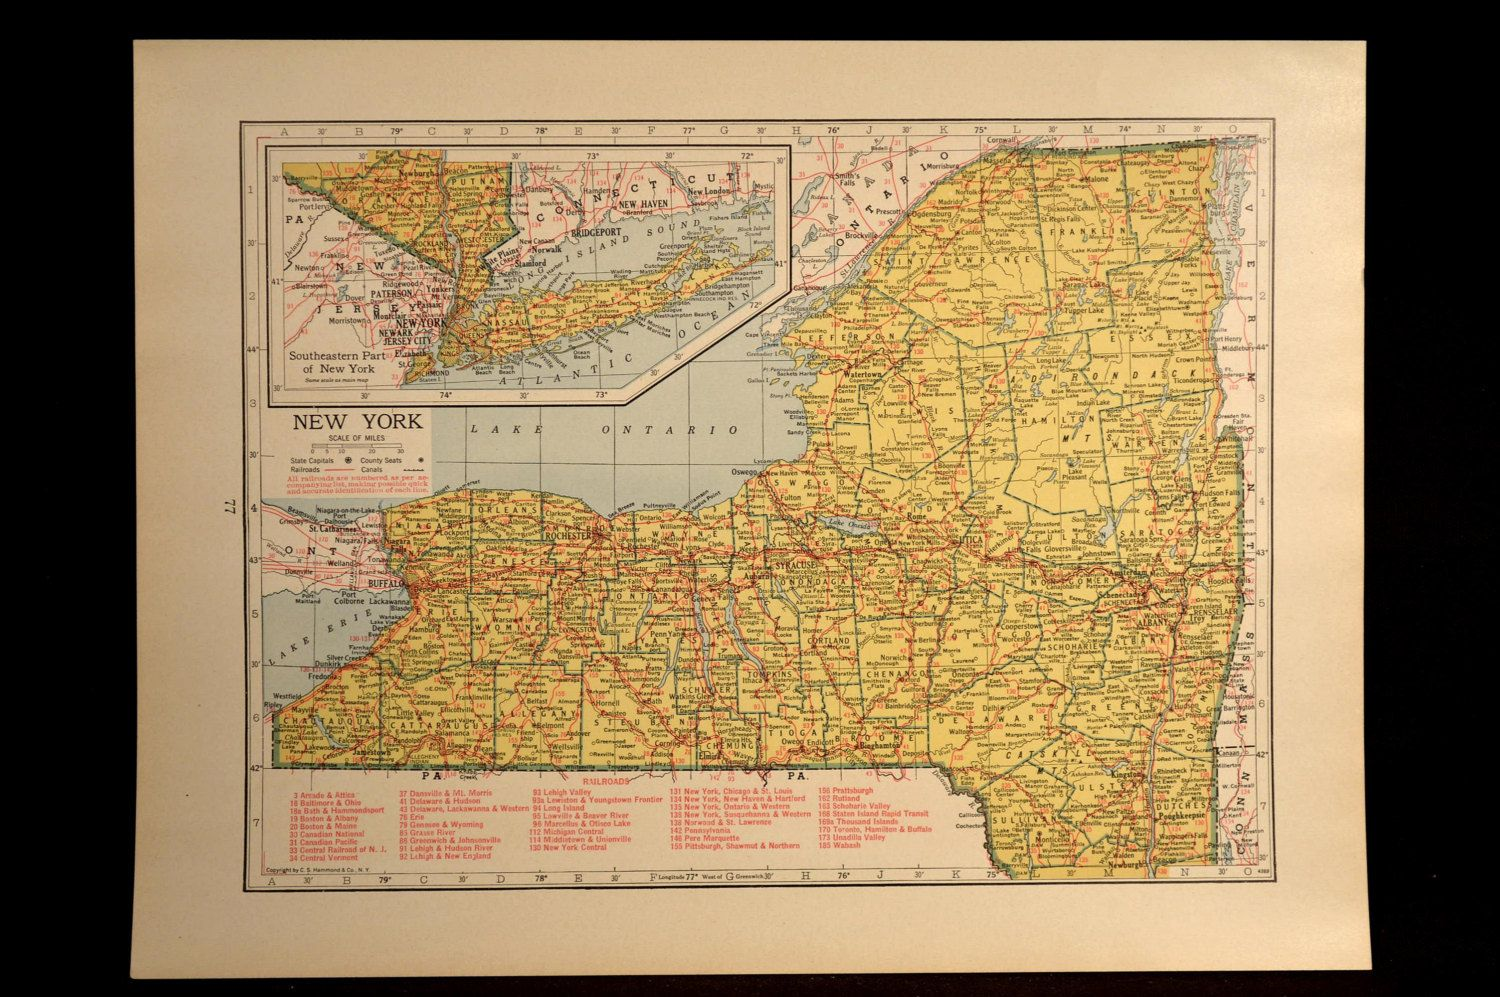 New York Map New York Vintage Railroad 1940s Yellow Original Maps